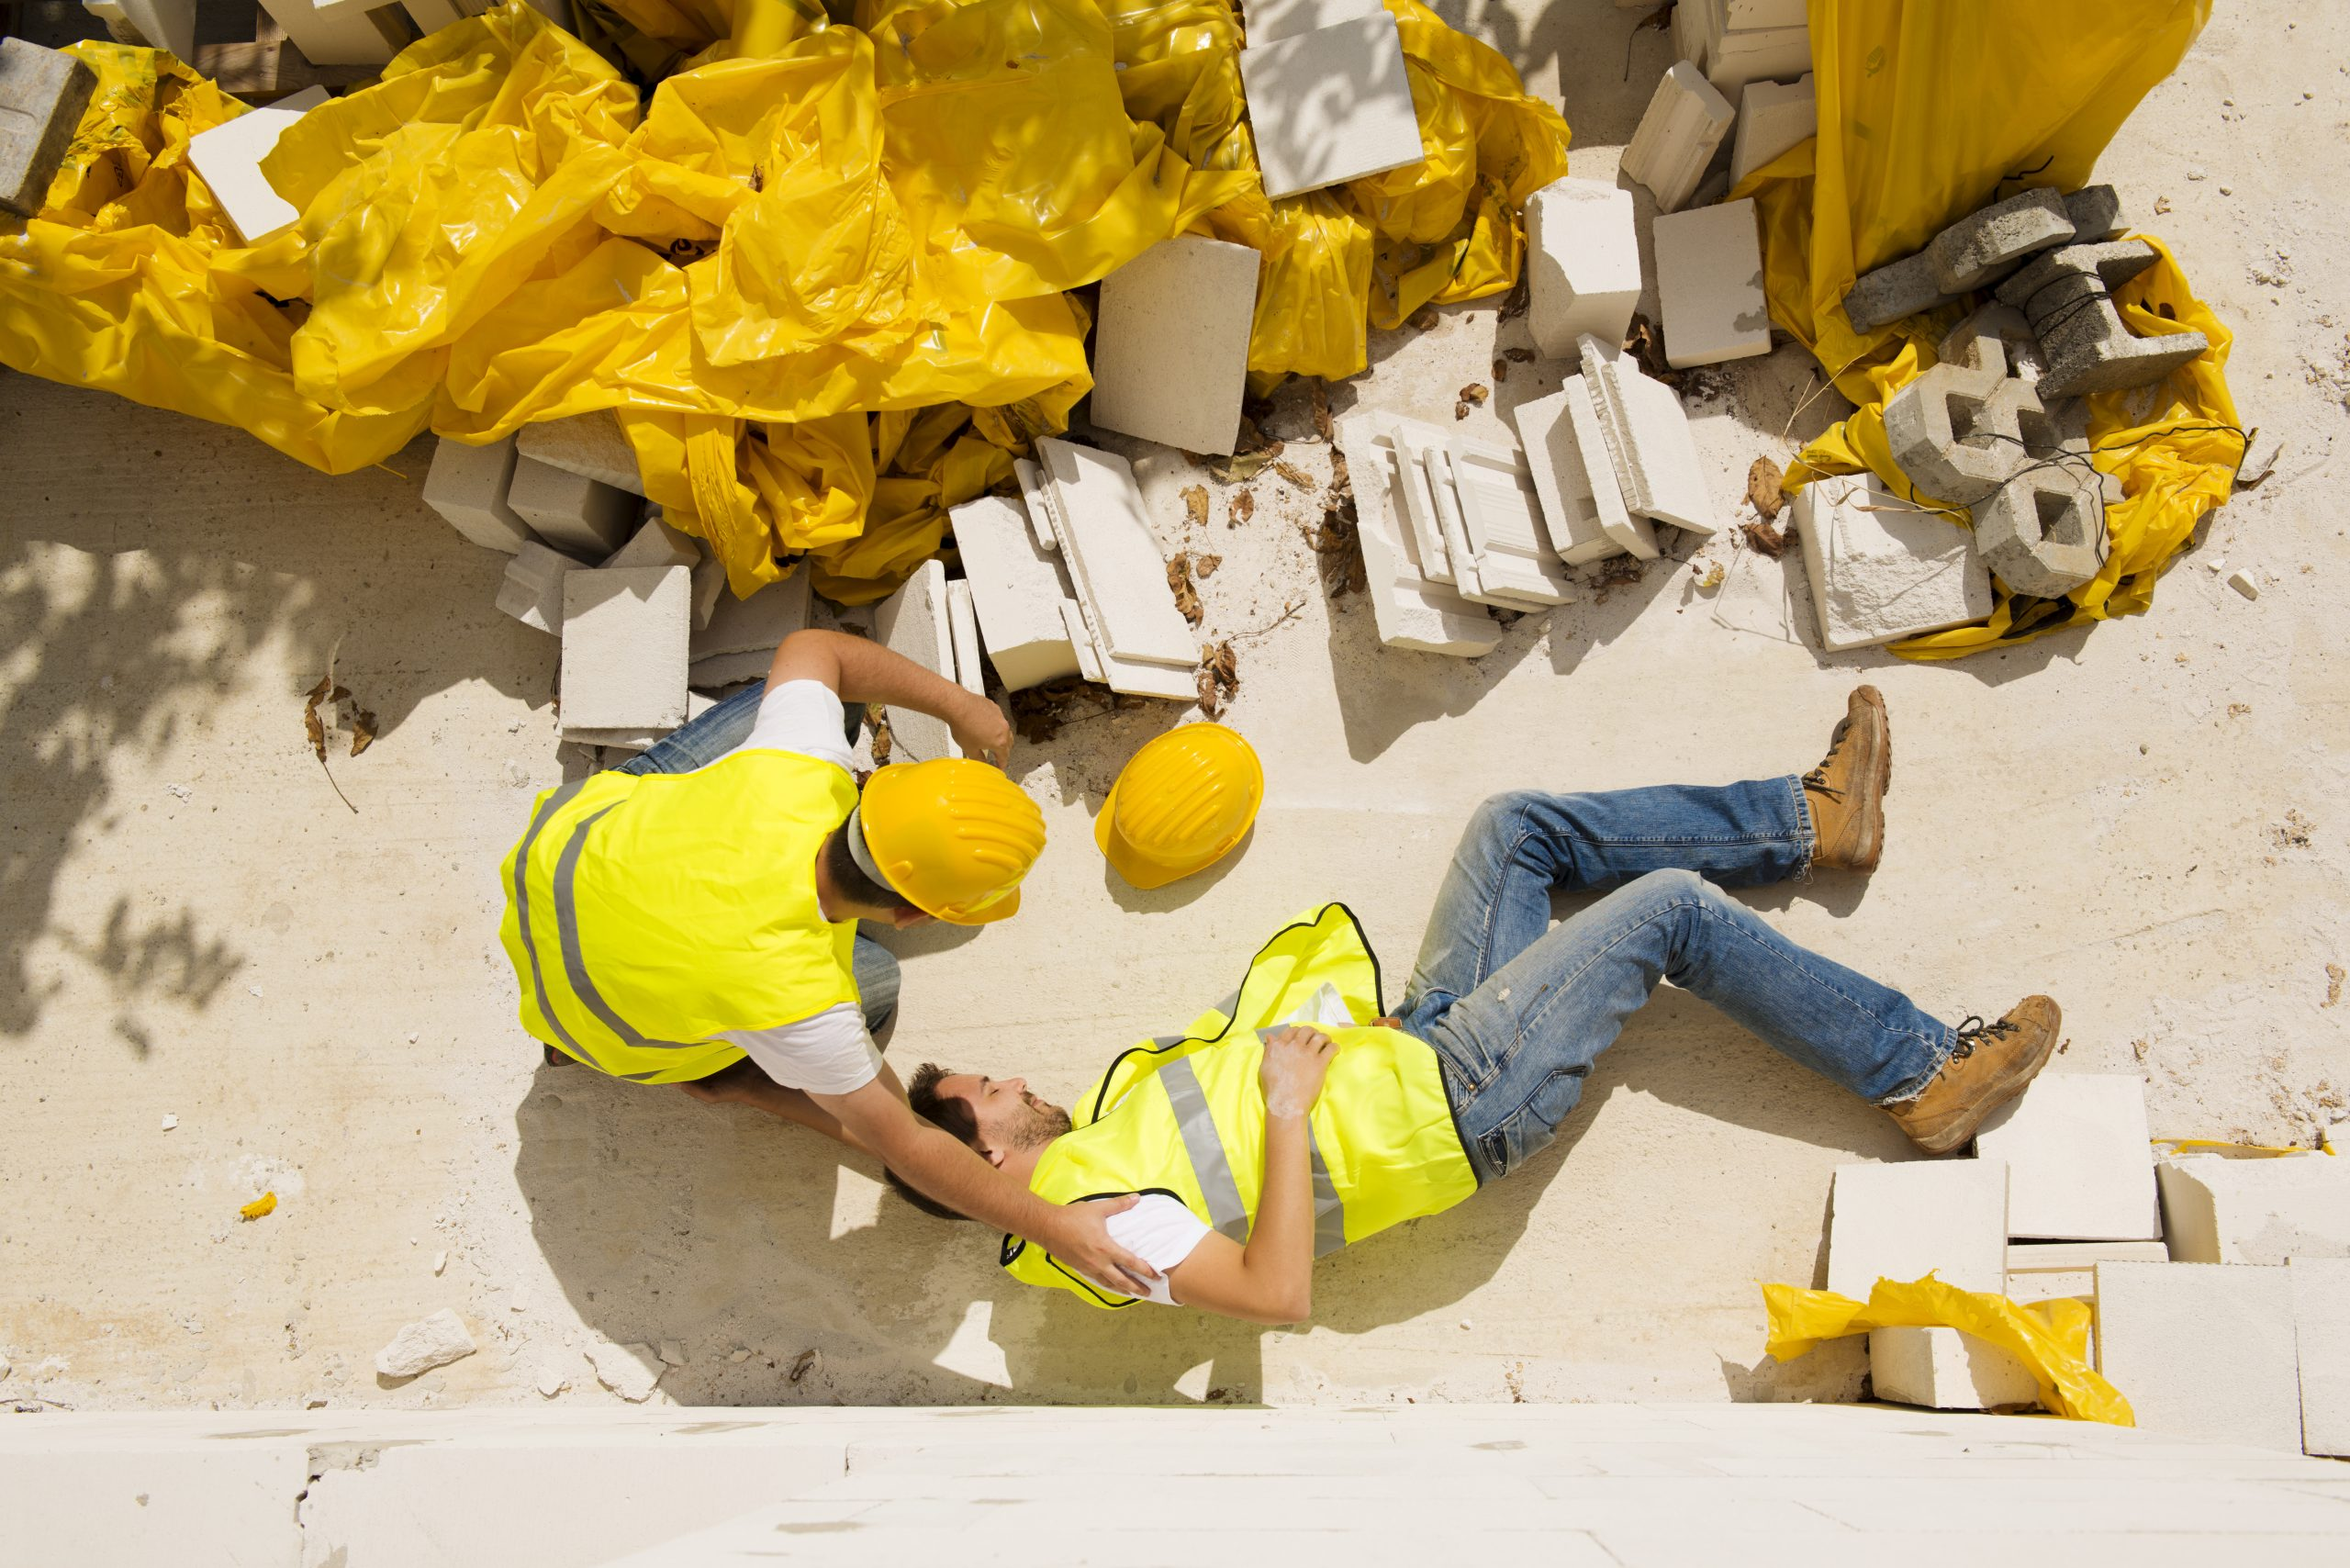 a construction site where one construction worker is injured and another is helping him